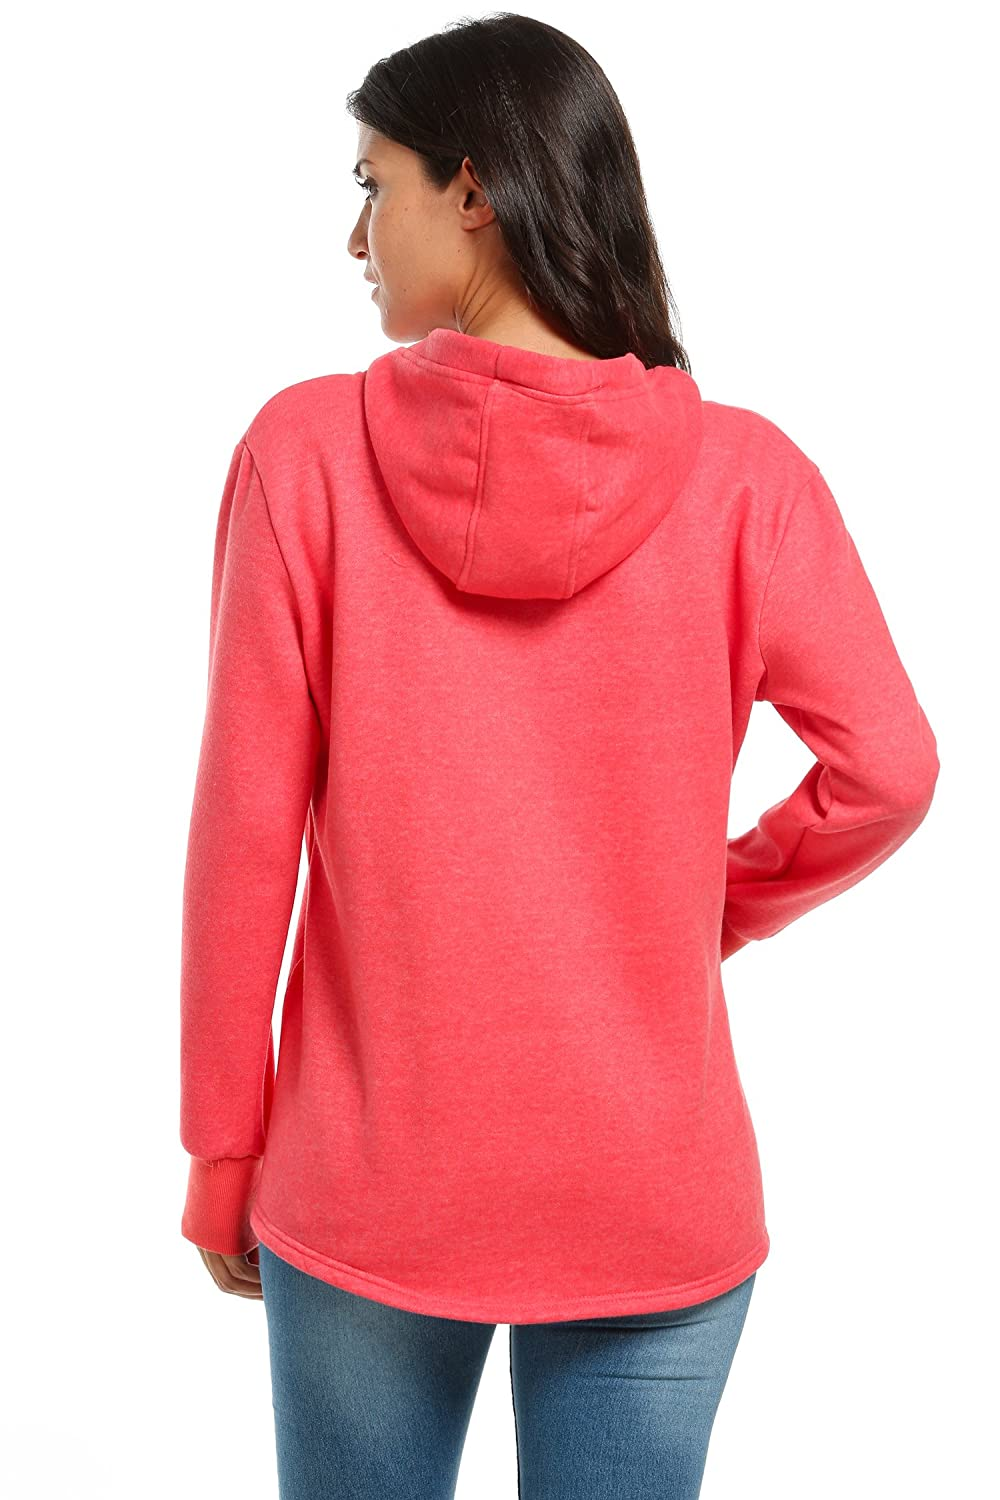 S, Blue eshion Women Hoodie Sweatshirt Cotton Hoody Pullover Top Sweater with Pockets